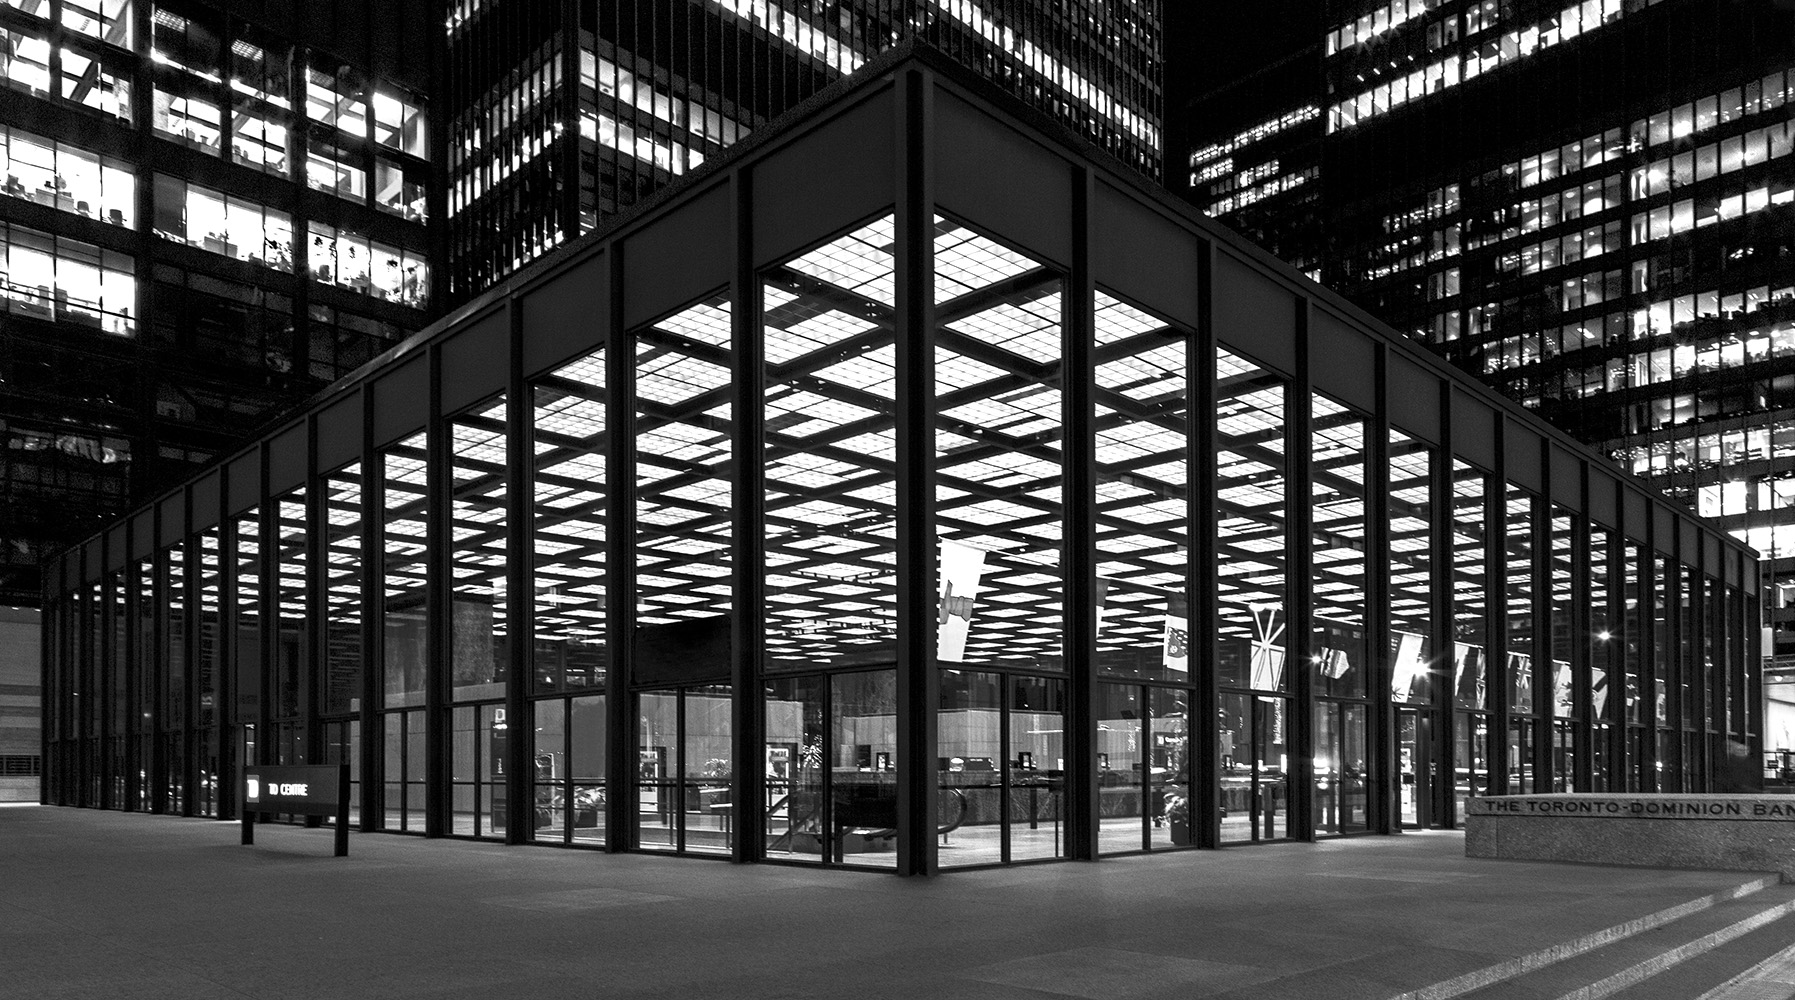 Photo 20131121. Mies van der Rohe's pavilion at the TD Centre, Toronto.